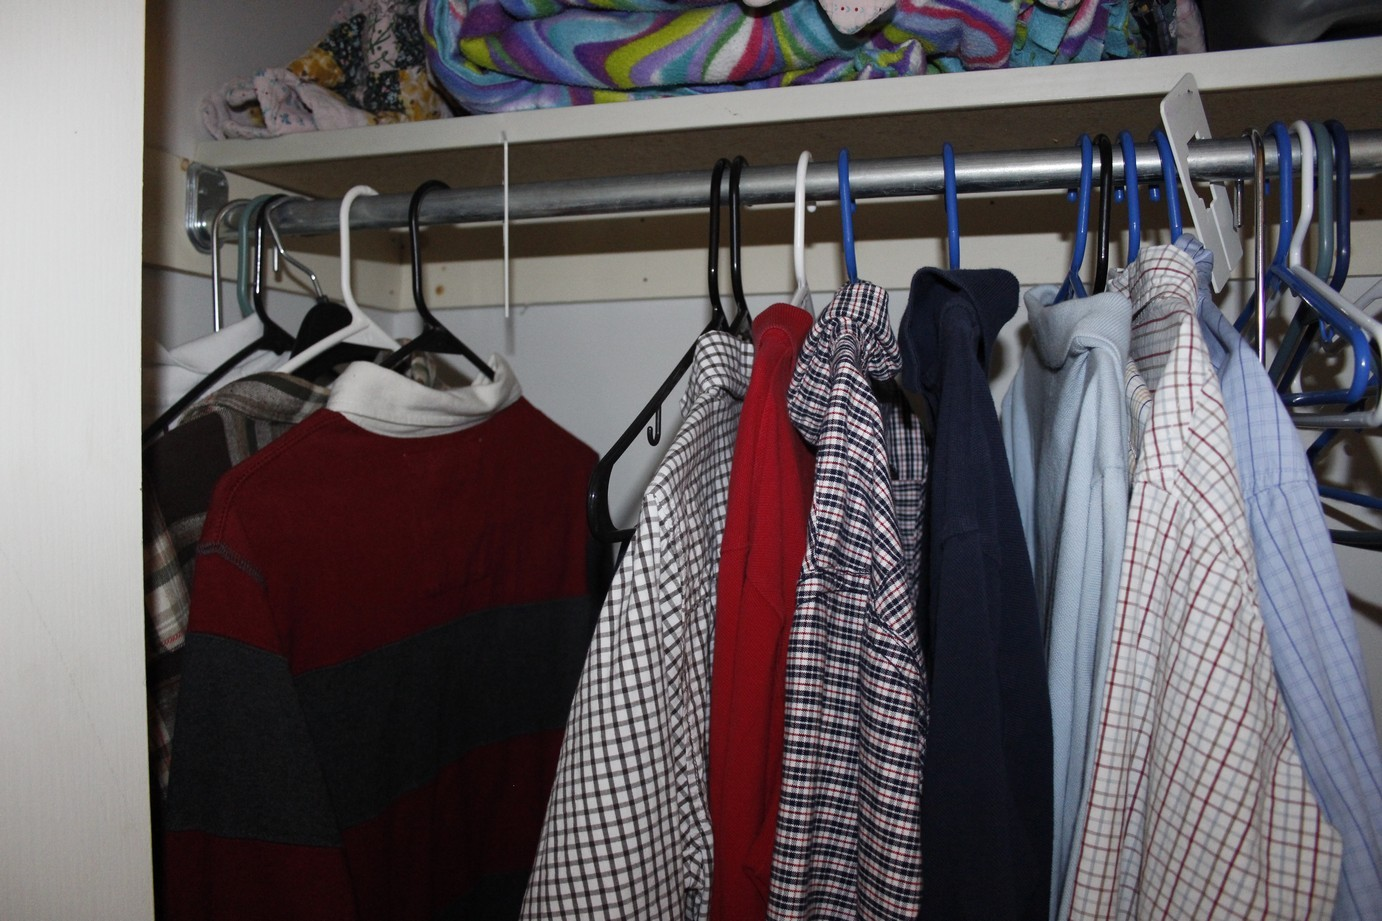 the bottom rack contains the three little boysu0027 clothes separated by boy with one divider and two colors of duct tape william is on the left